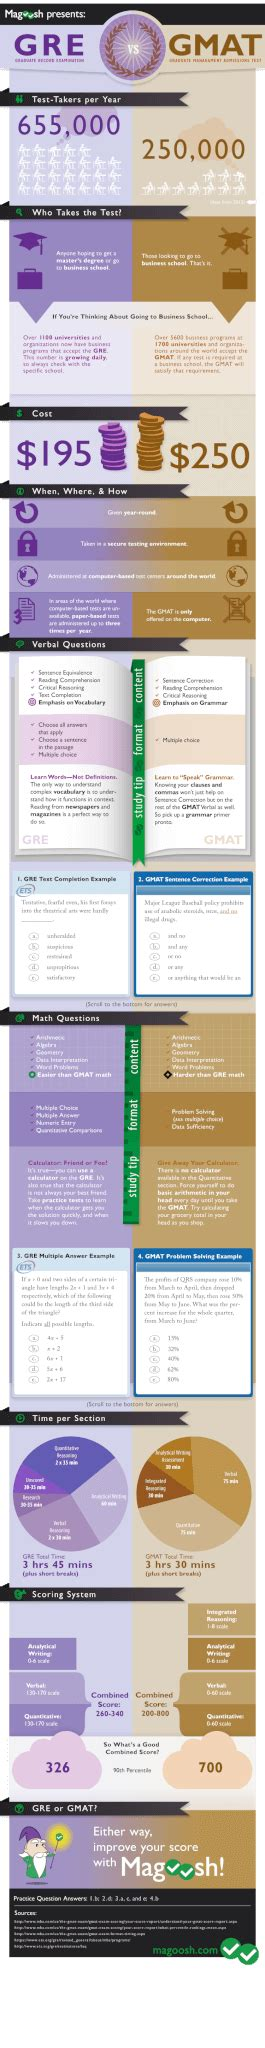 Mba With Gre by Gre Vs Gmat Magoosh Gre